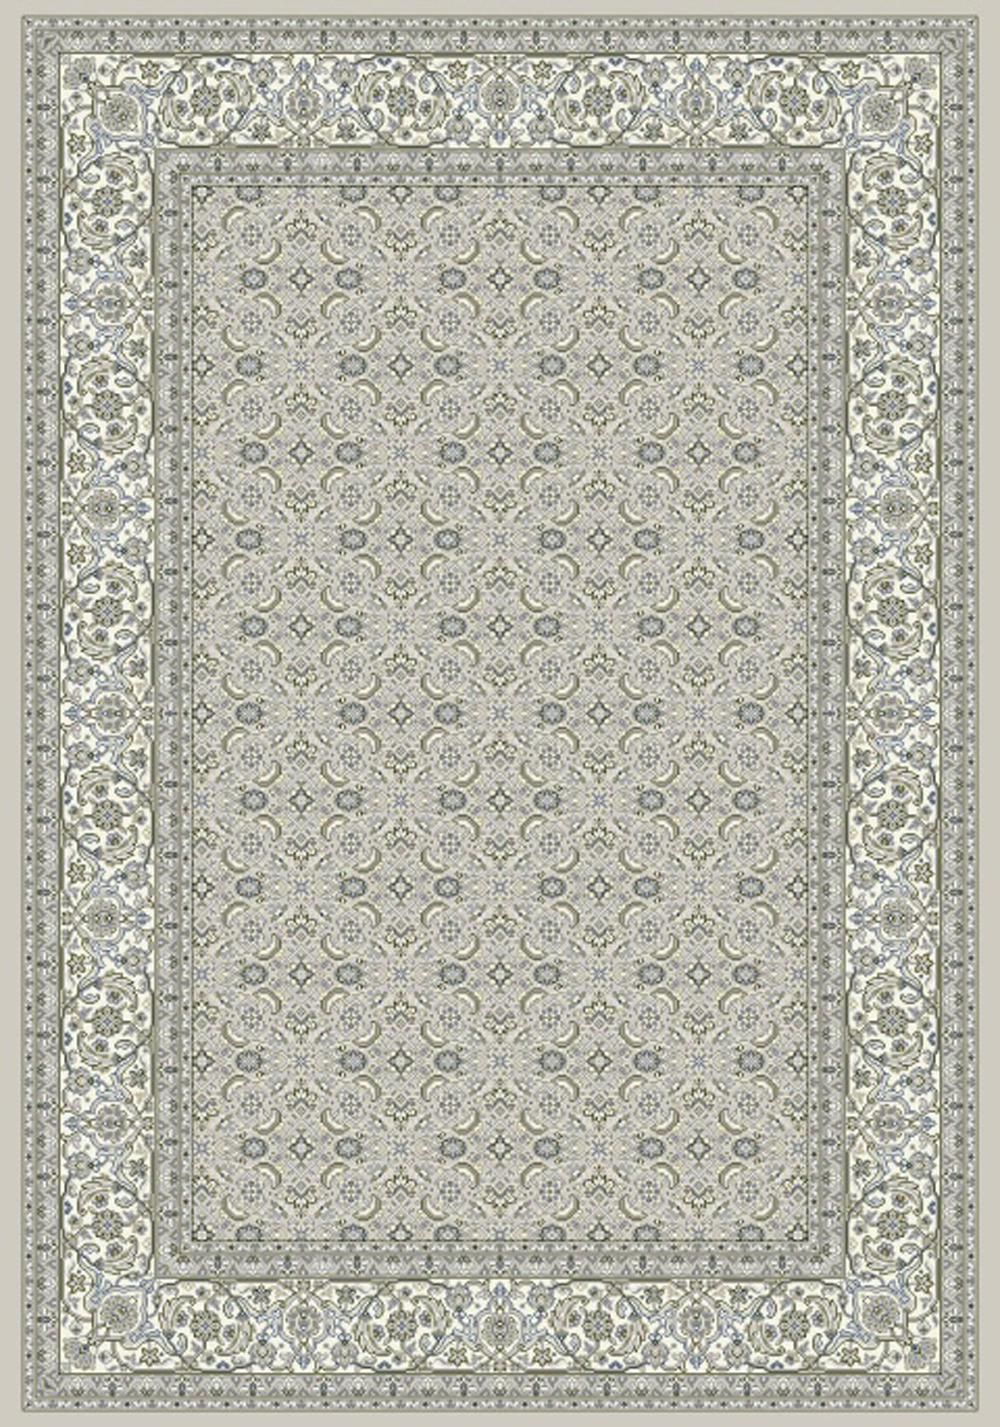 Dynamic ANCIENT GARDEN 57011 SOFT GREY/CREAM Rug